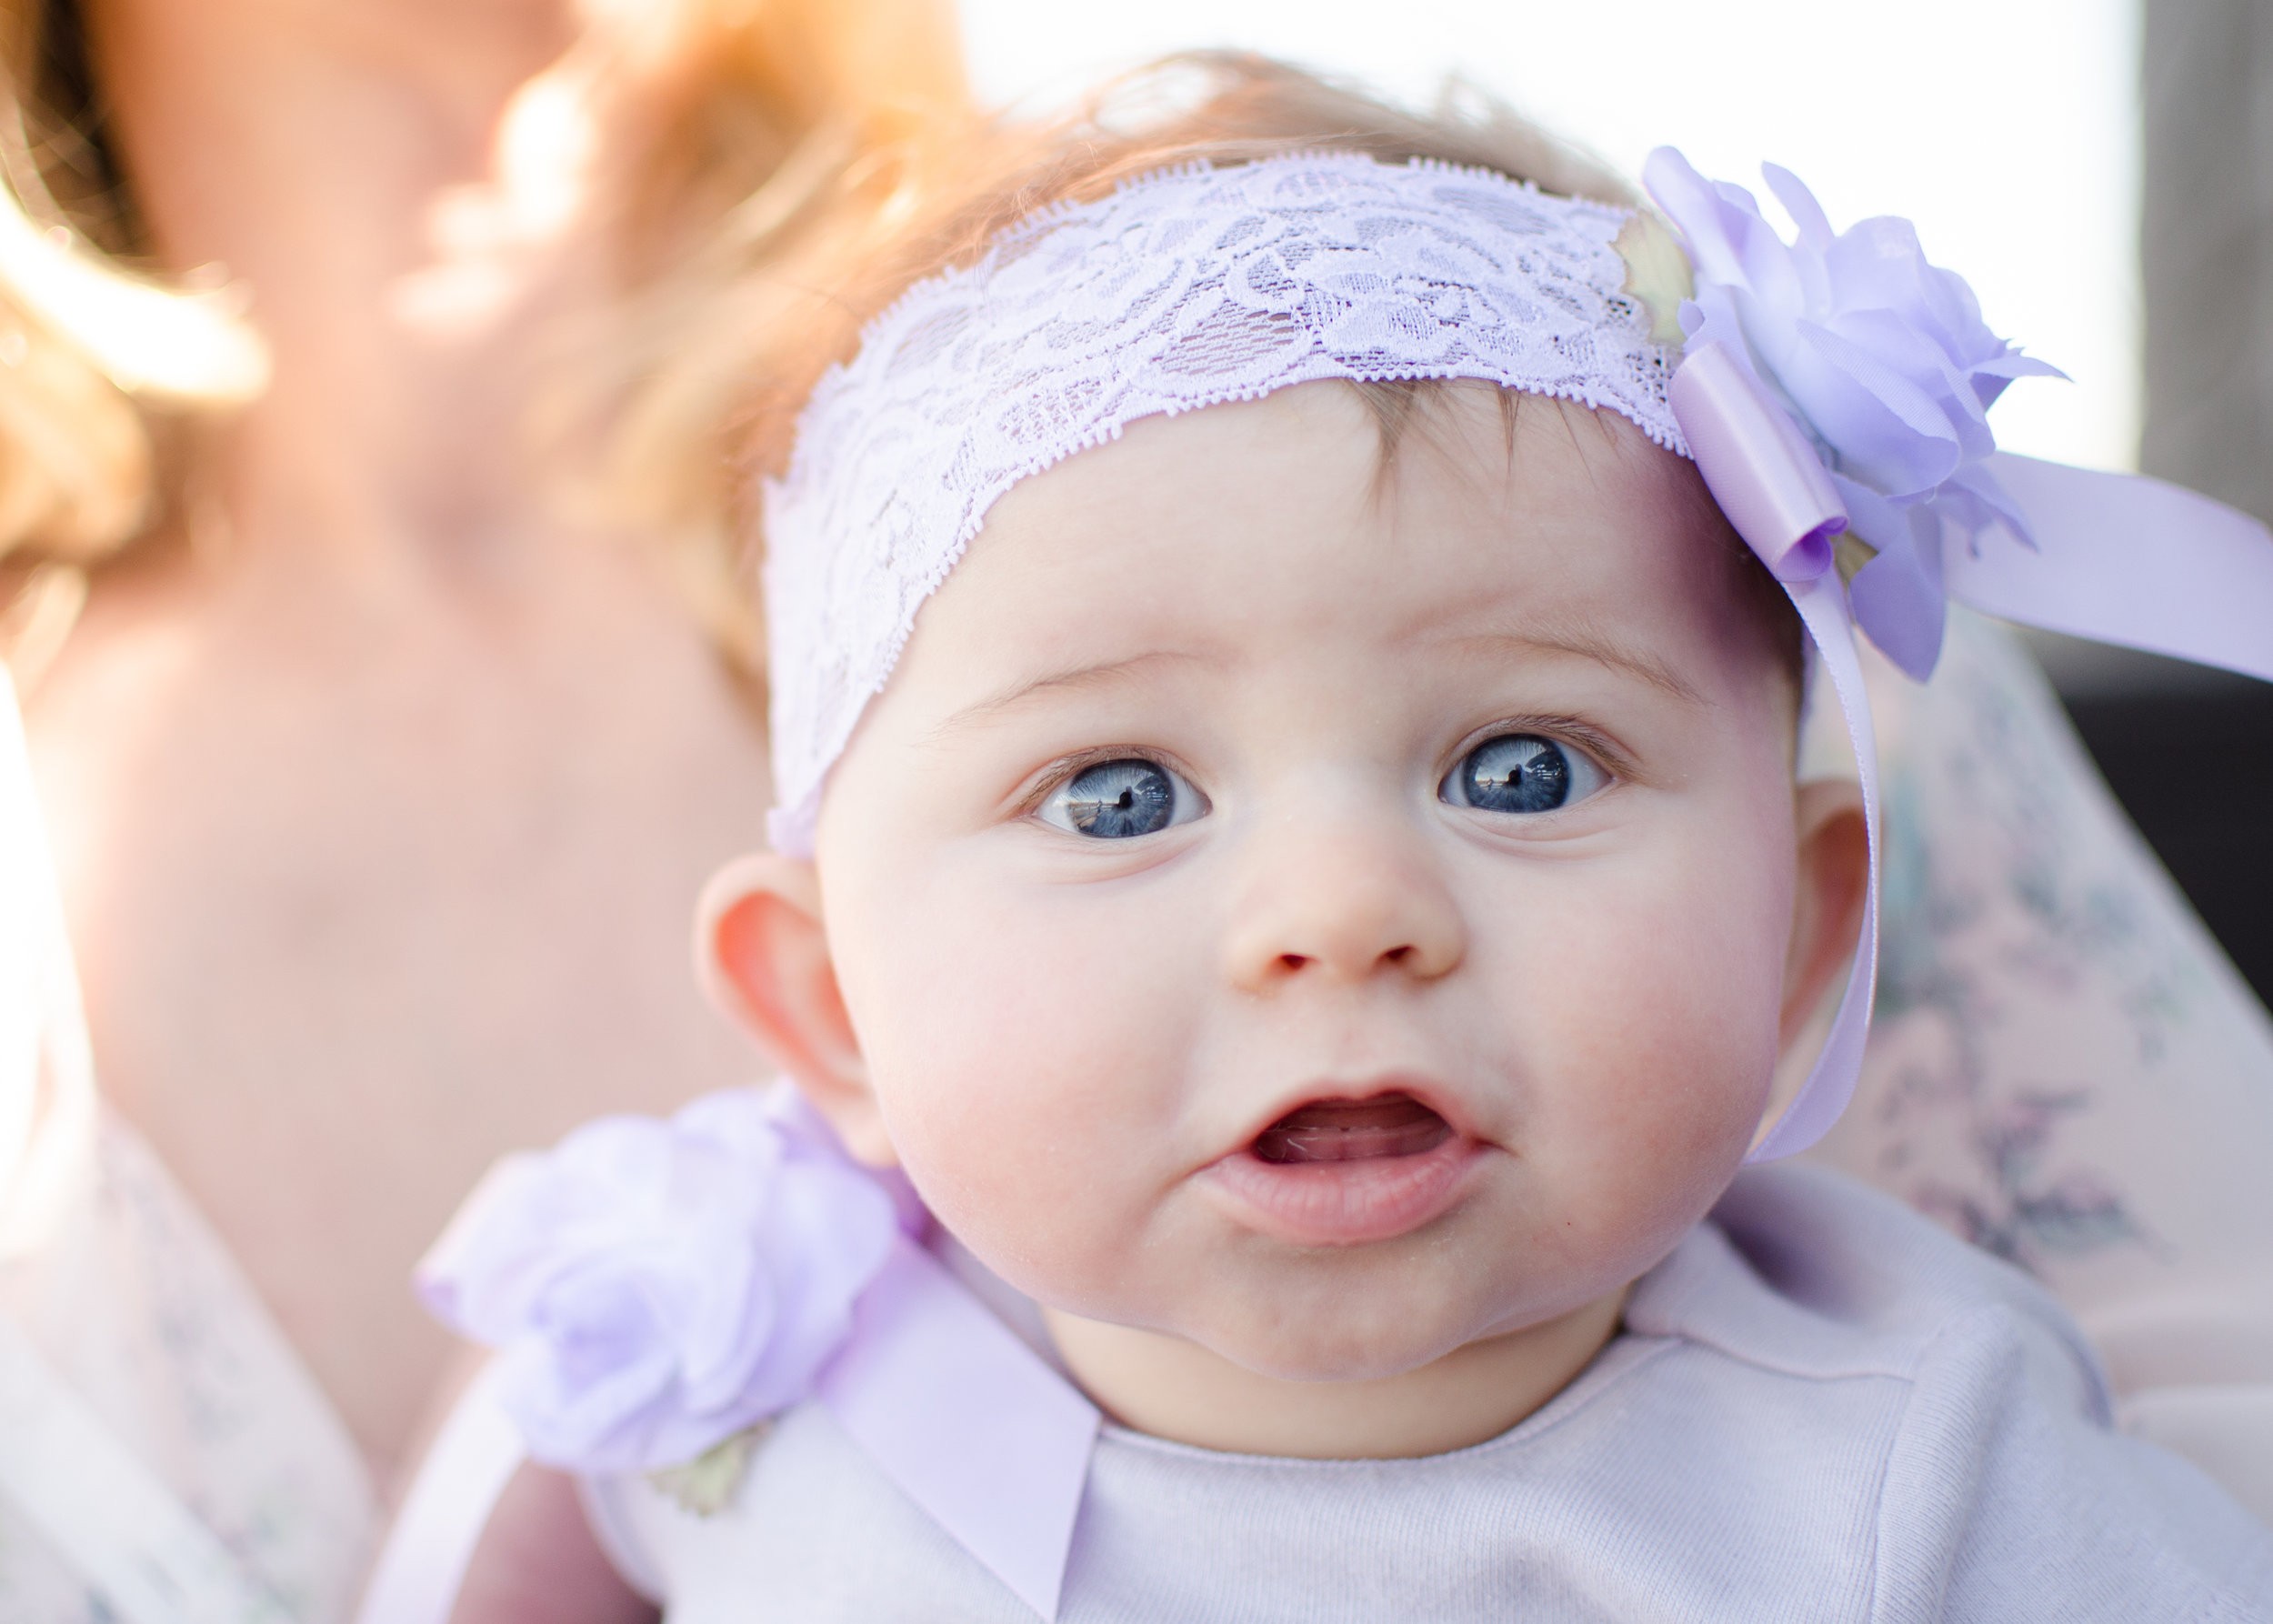 Blue eyed girl, gorgeous eyes, happy girl, mommy and me, 2 teeth